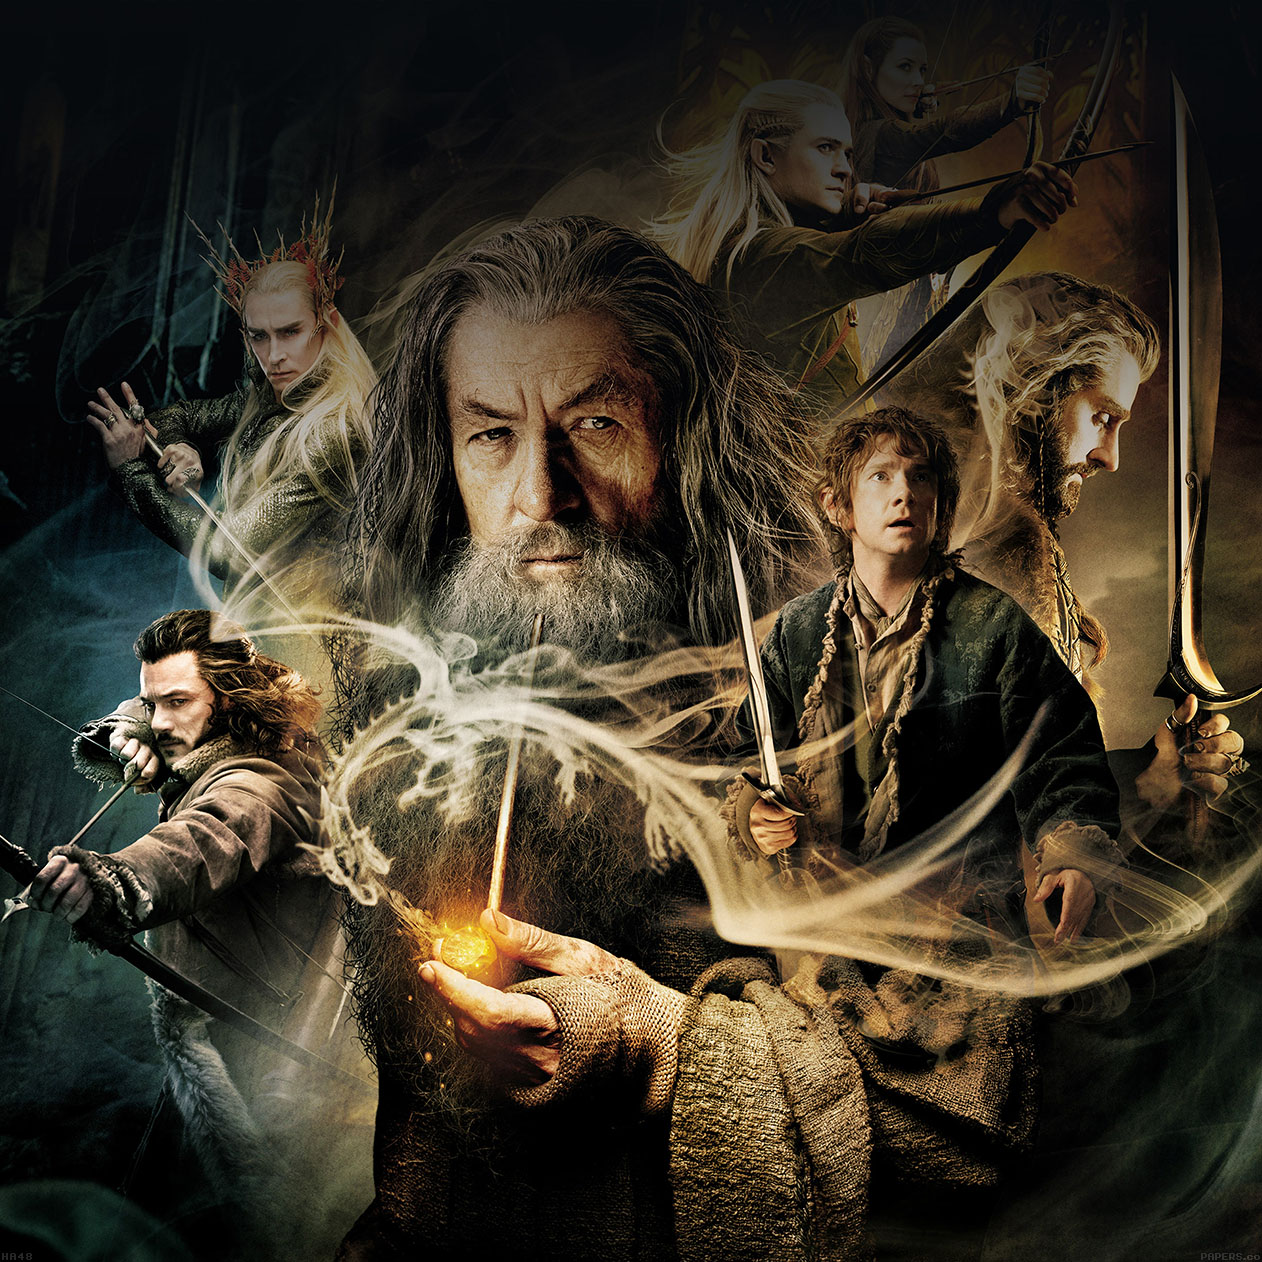 Dwarves The Hobbit Fan Art